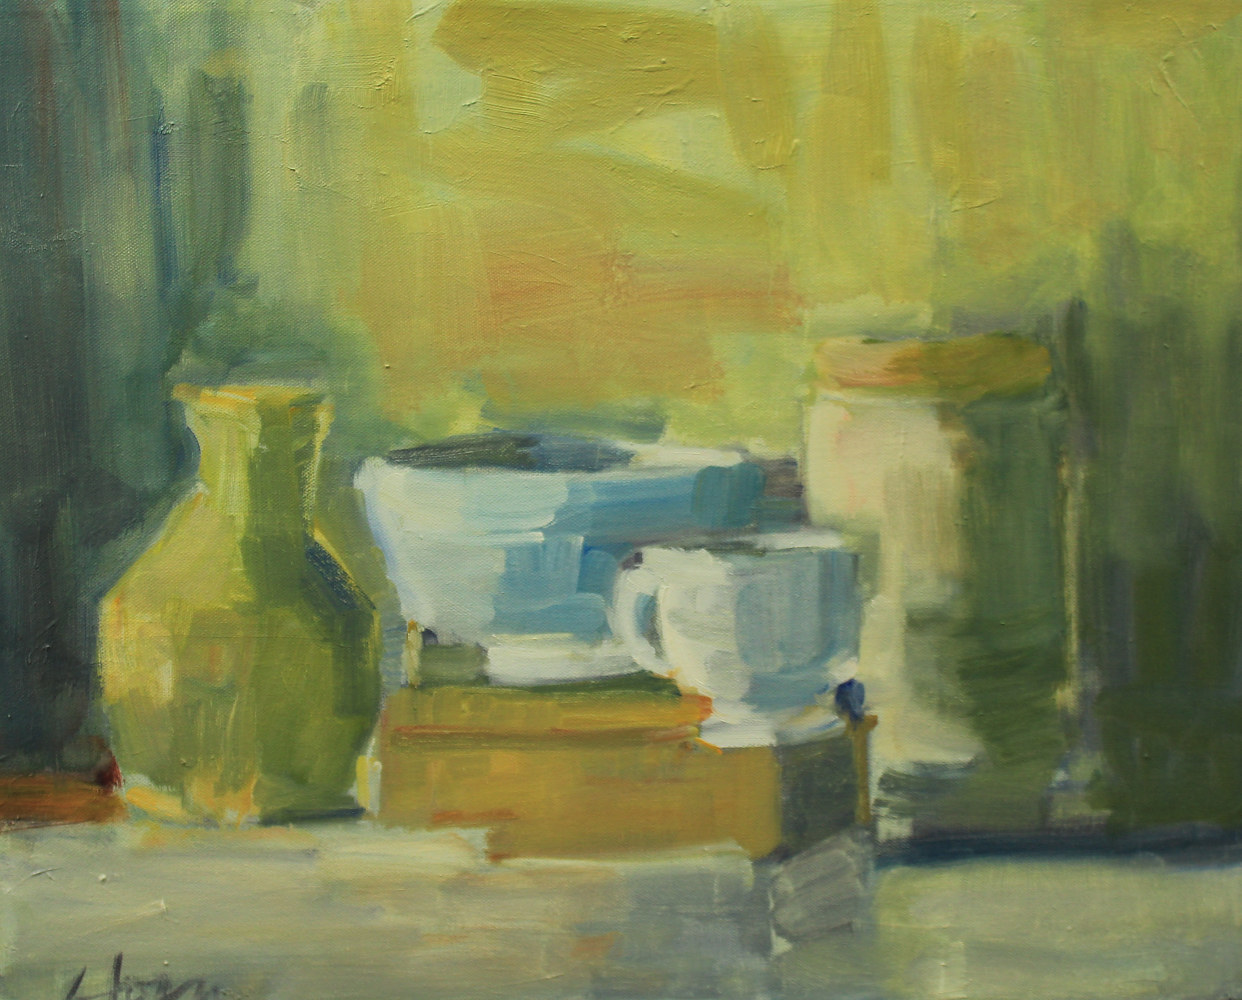 "Still life With White Teacup, oil on canvas, 16"" x 20"" by Susan Horn"